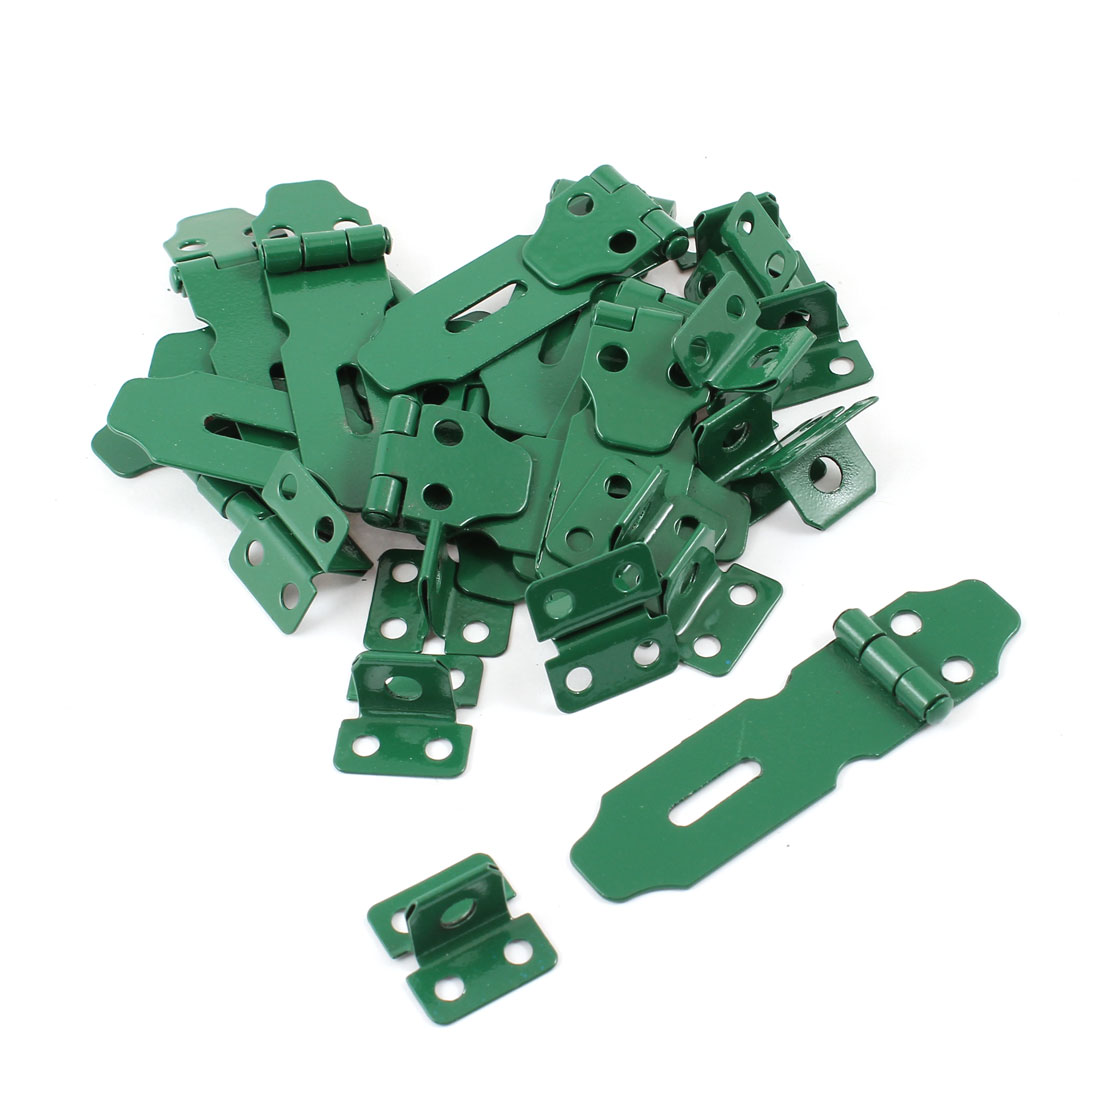 13 Pcs Home Cupboard Cabinets Doors Green Latch Hasp Staple Set 5.5cm Long